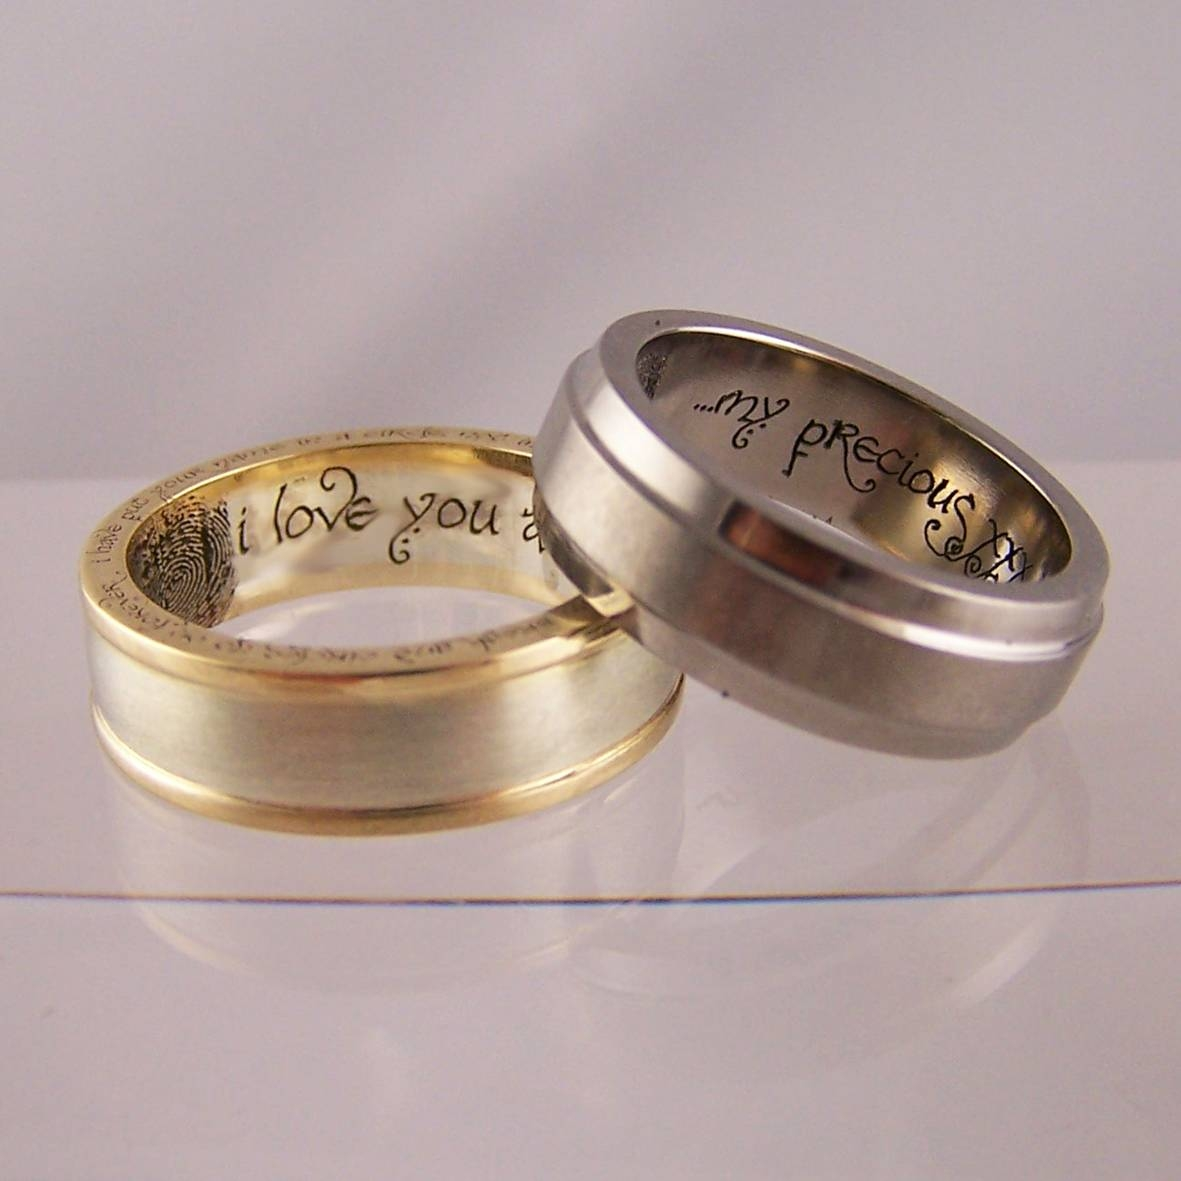 Geek Chic Wedding Rings & Other Jewellery – Ring Jewellery With Regard To Titanium Lord Of The Rings Wedding Bands (View 6 of 21)